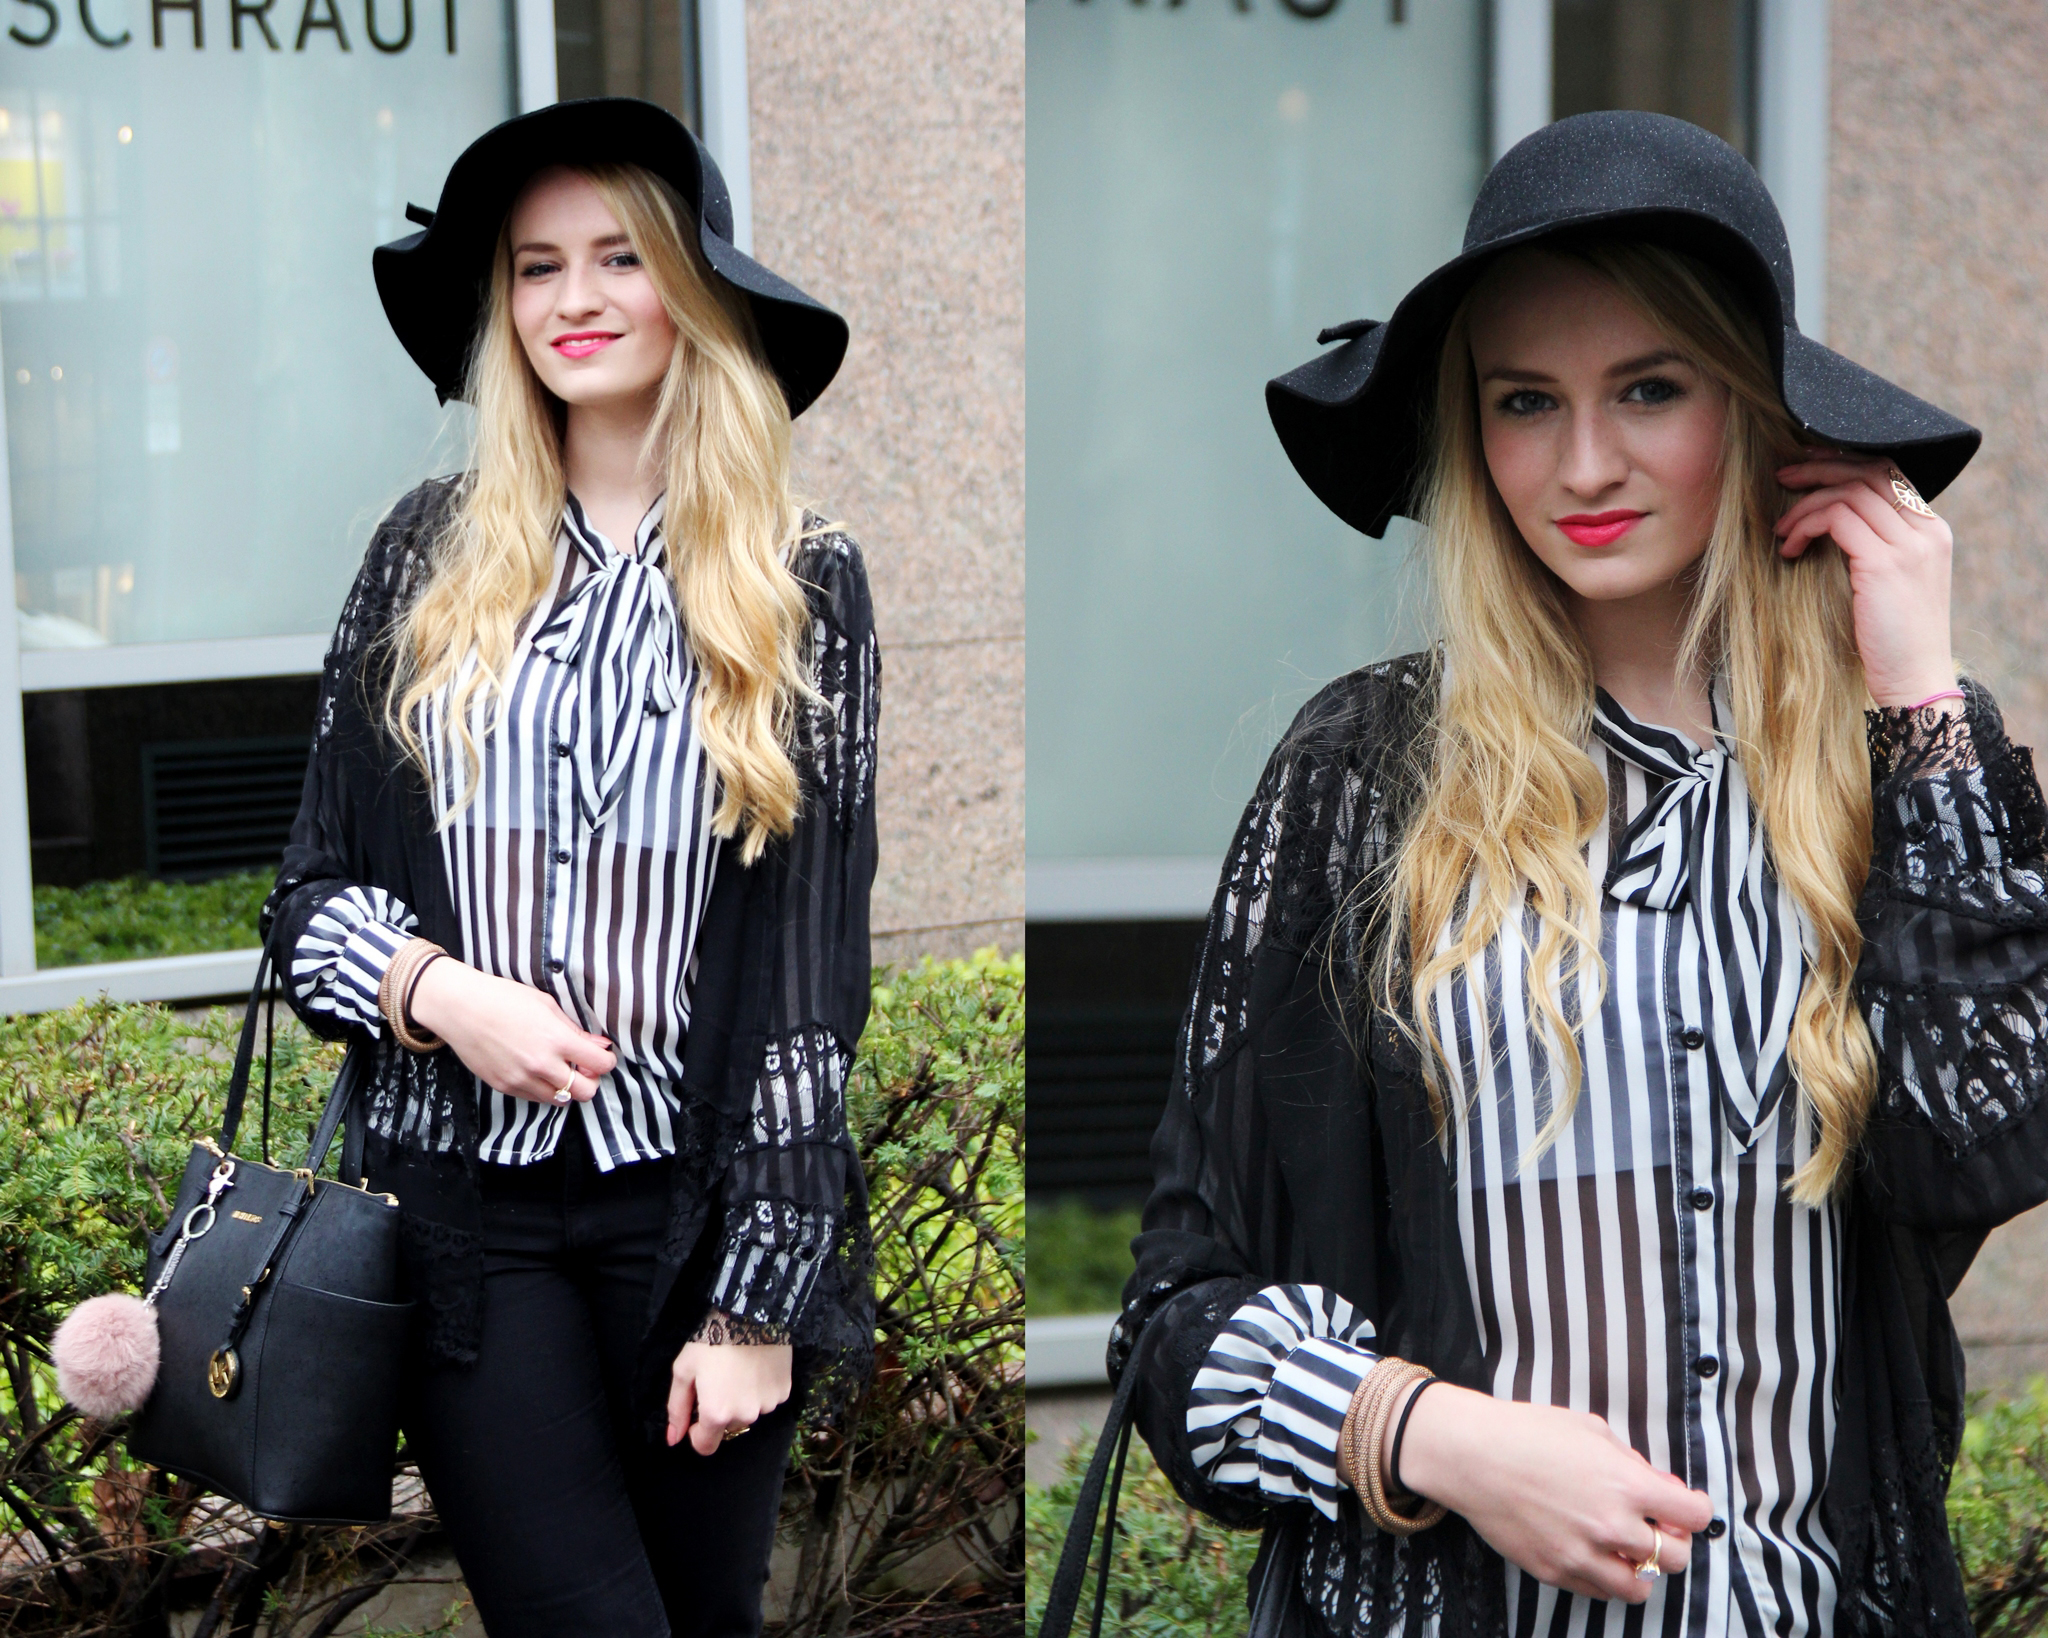 Striped-Outfit-002